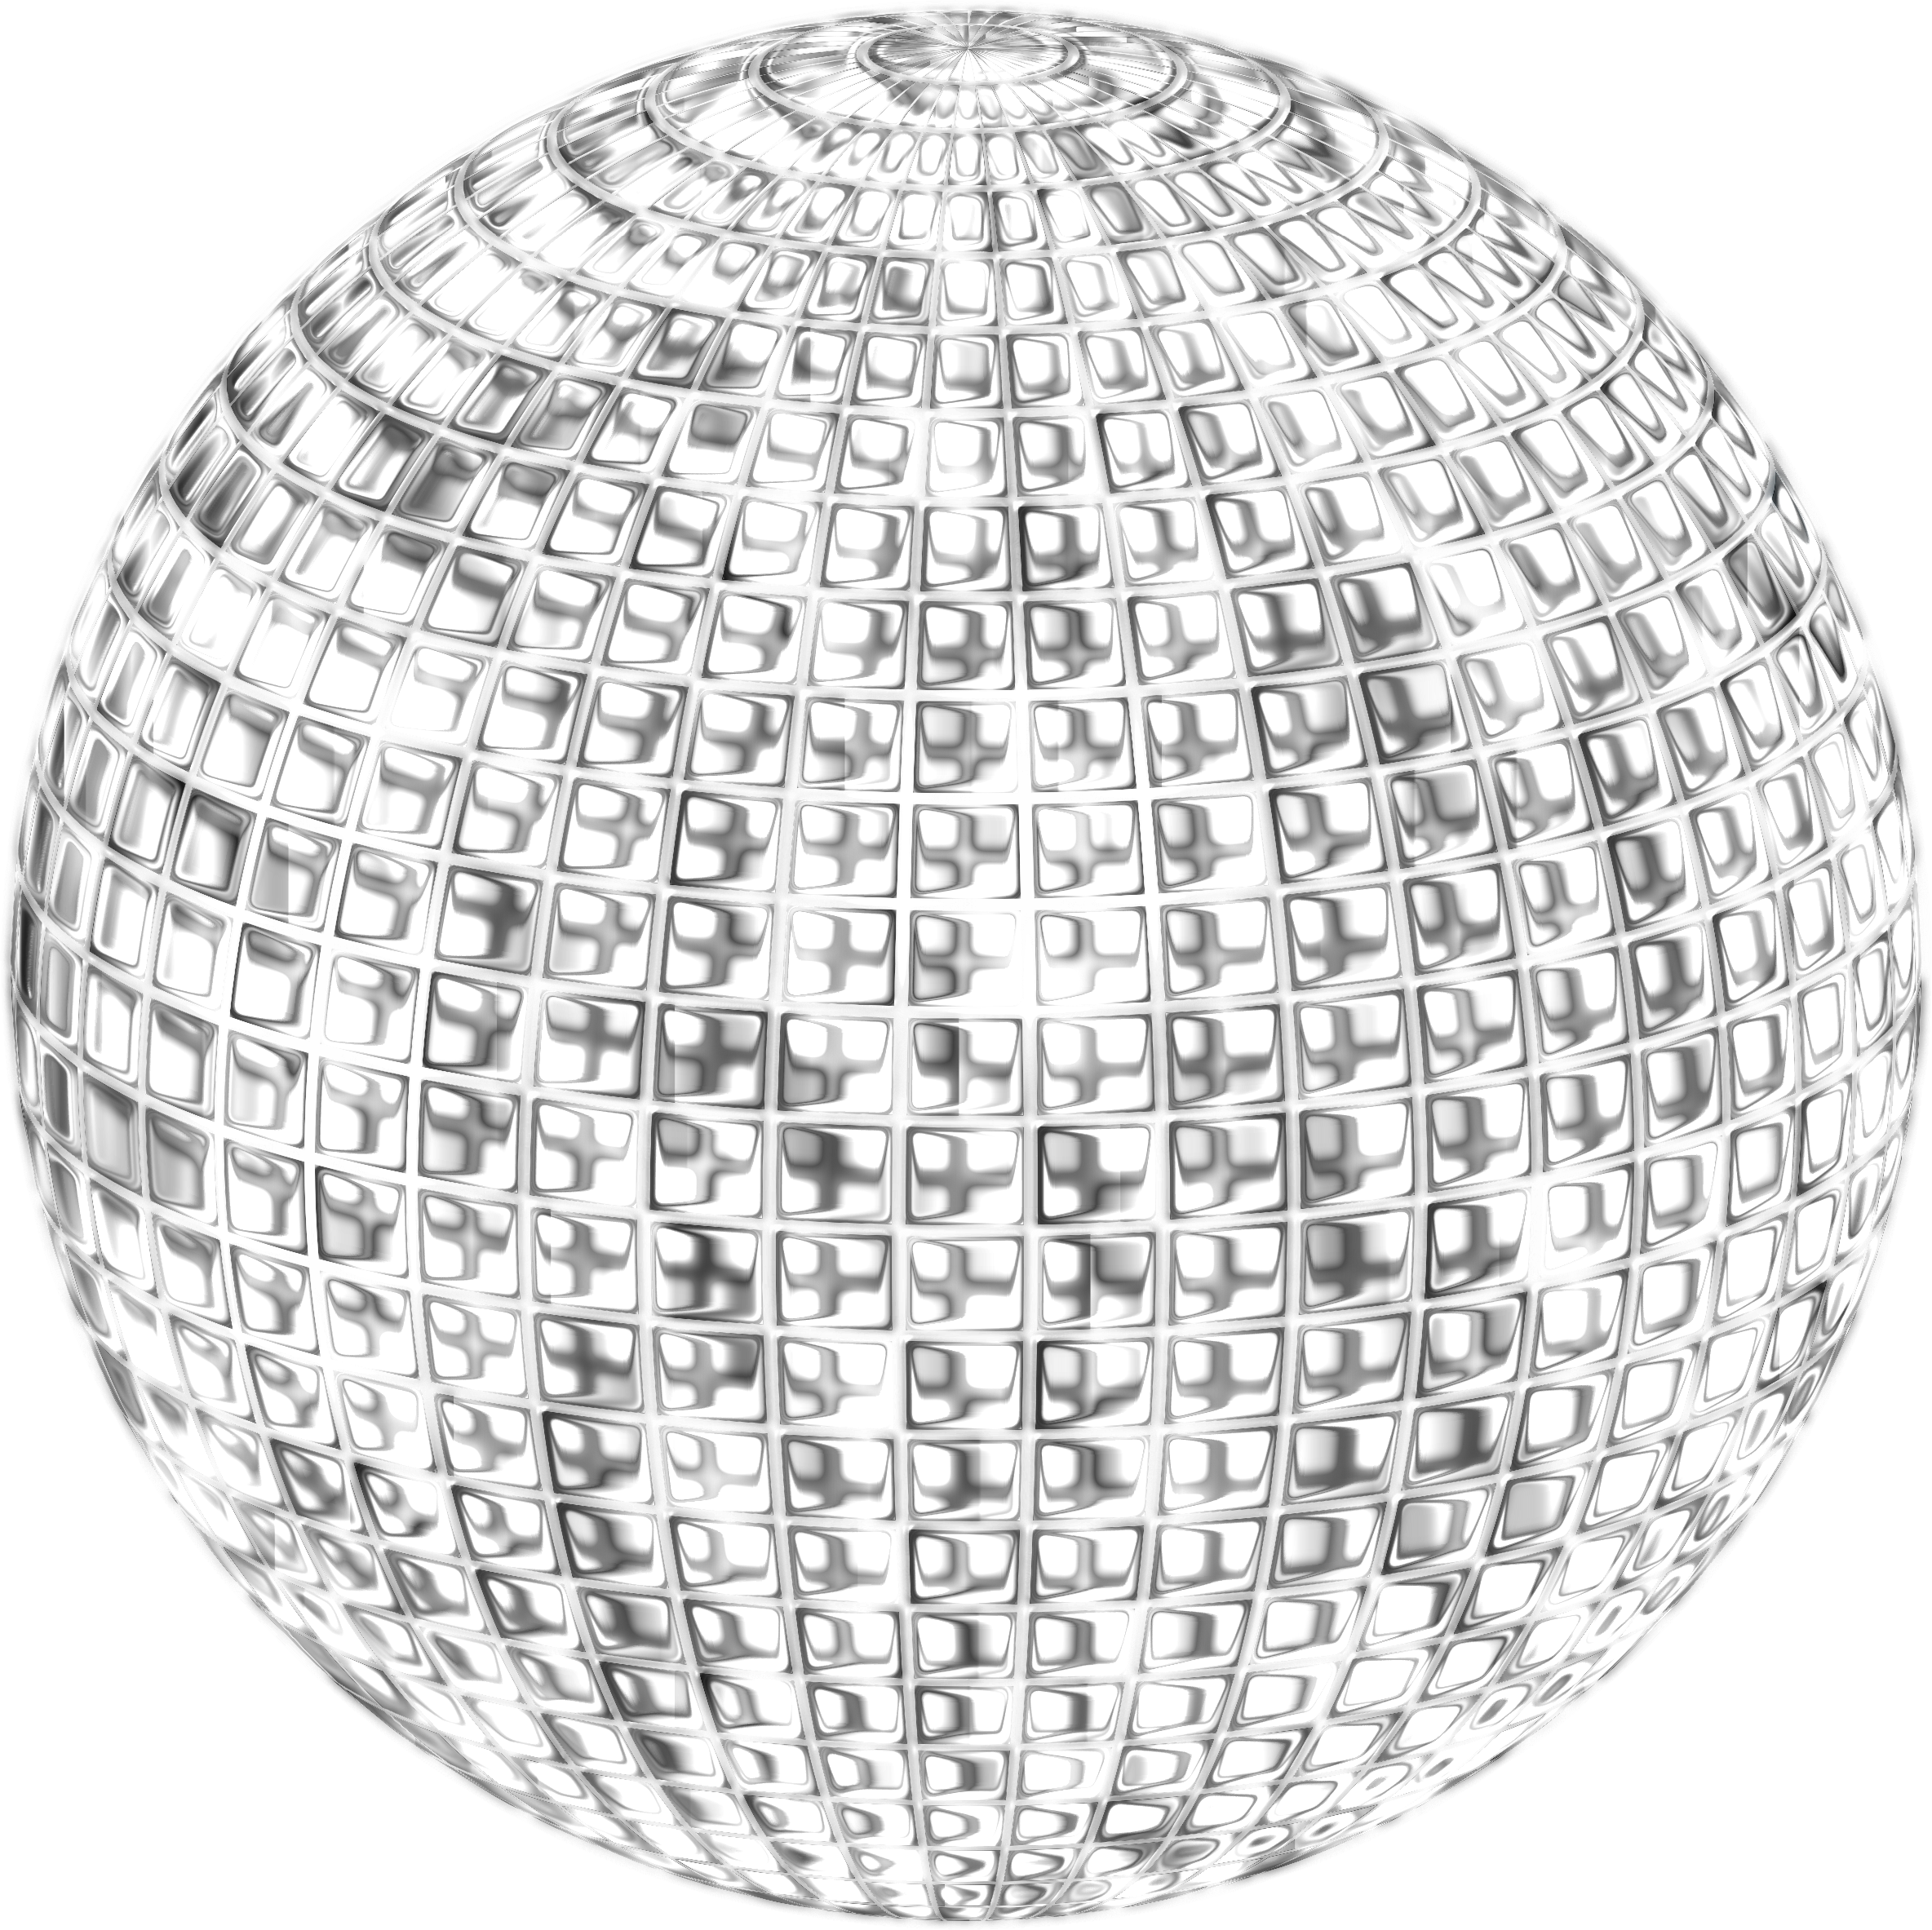 Glimmering Disco Ball Enhanced 4 No Background by GDJ